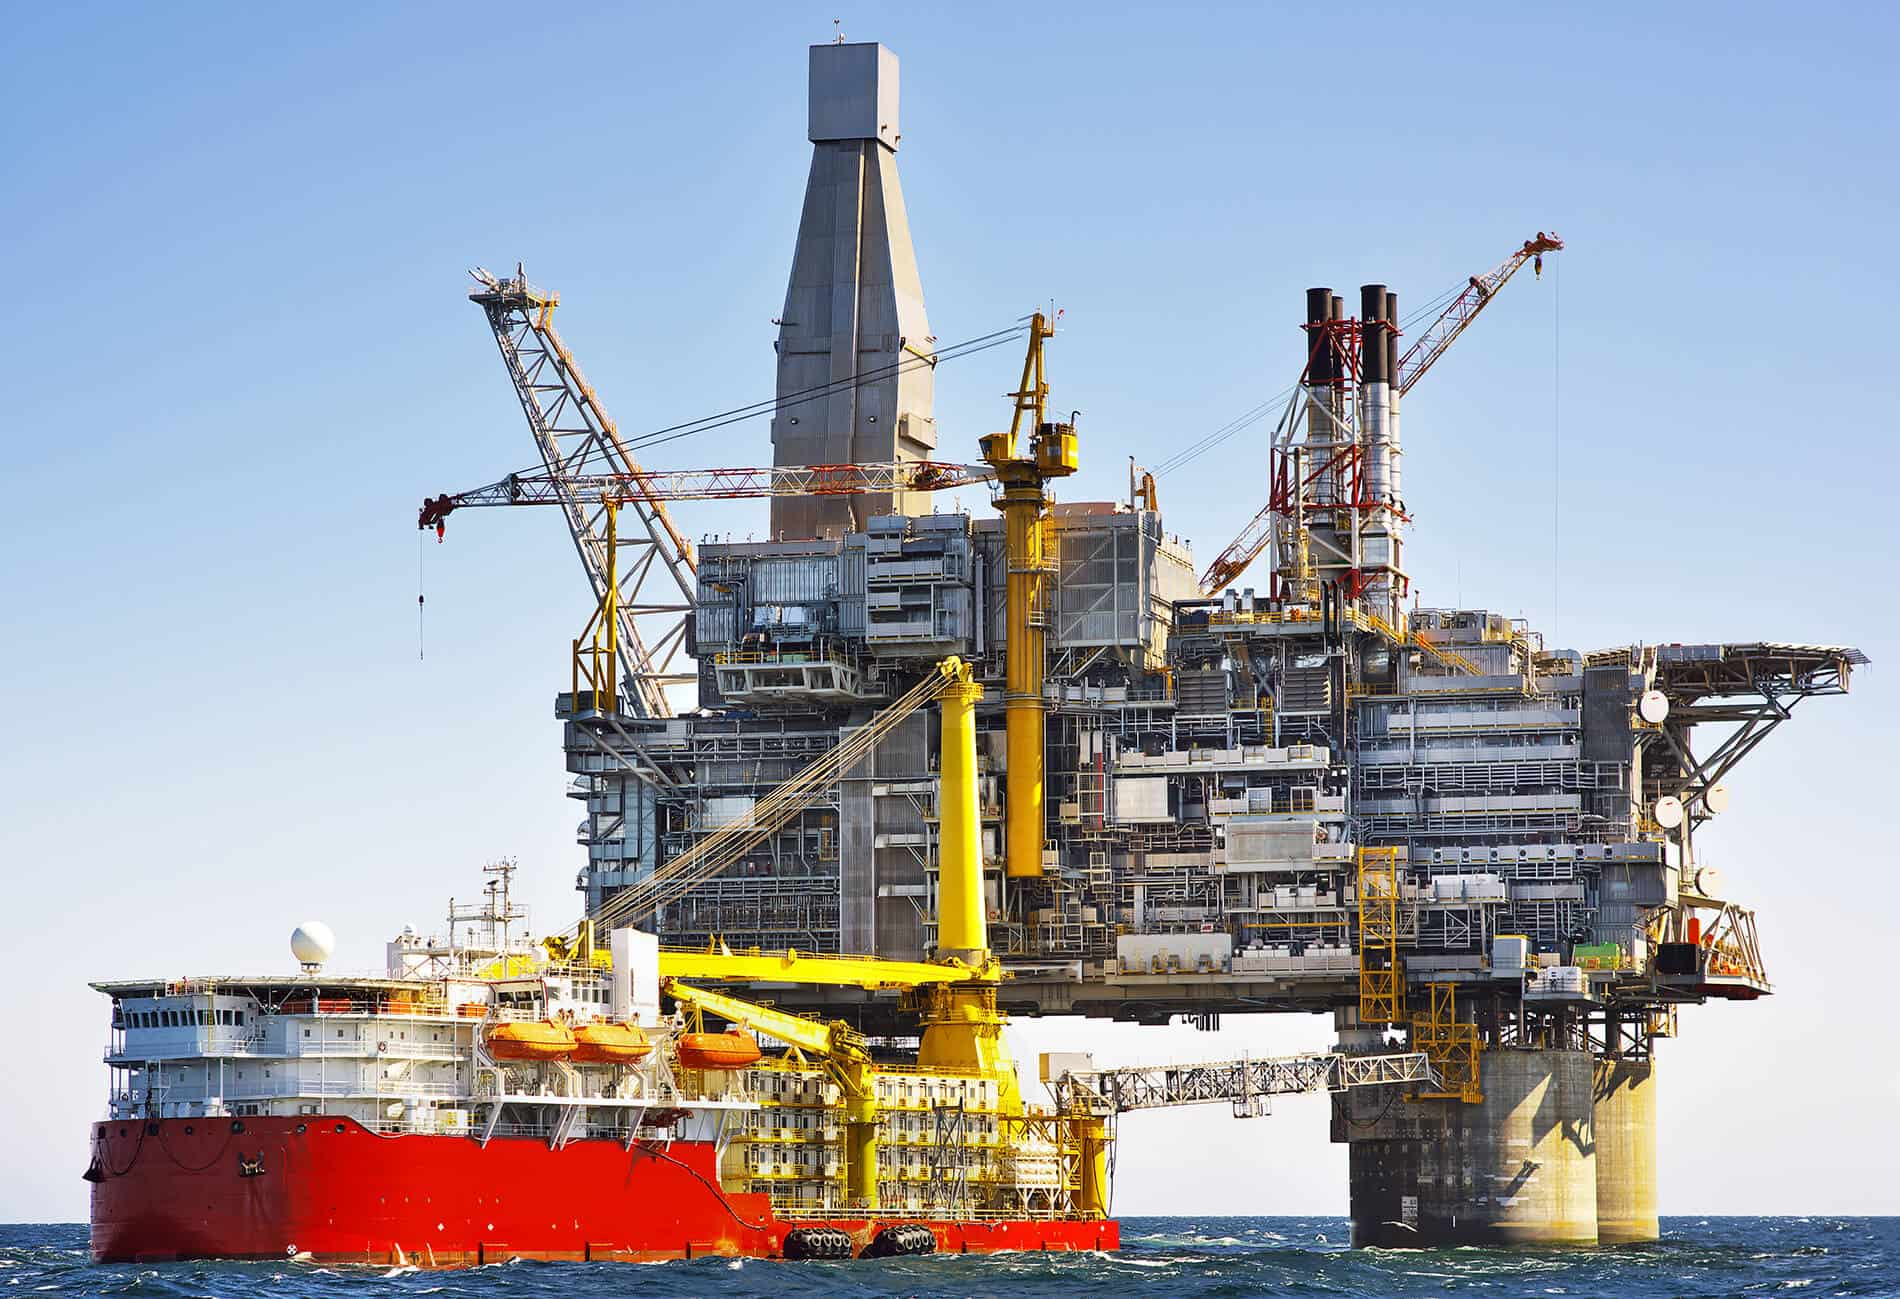 A complex yet beautiful engineering feat of an oil rig in mid-ocean